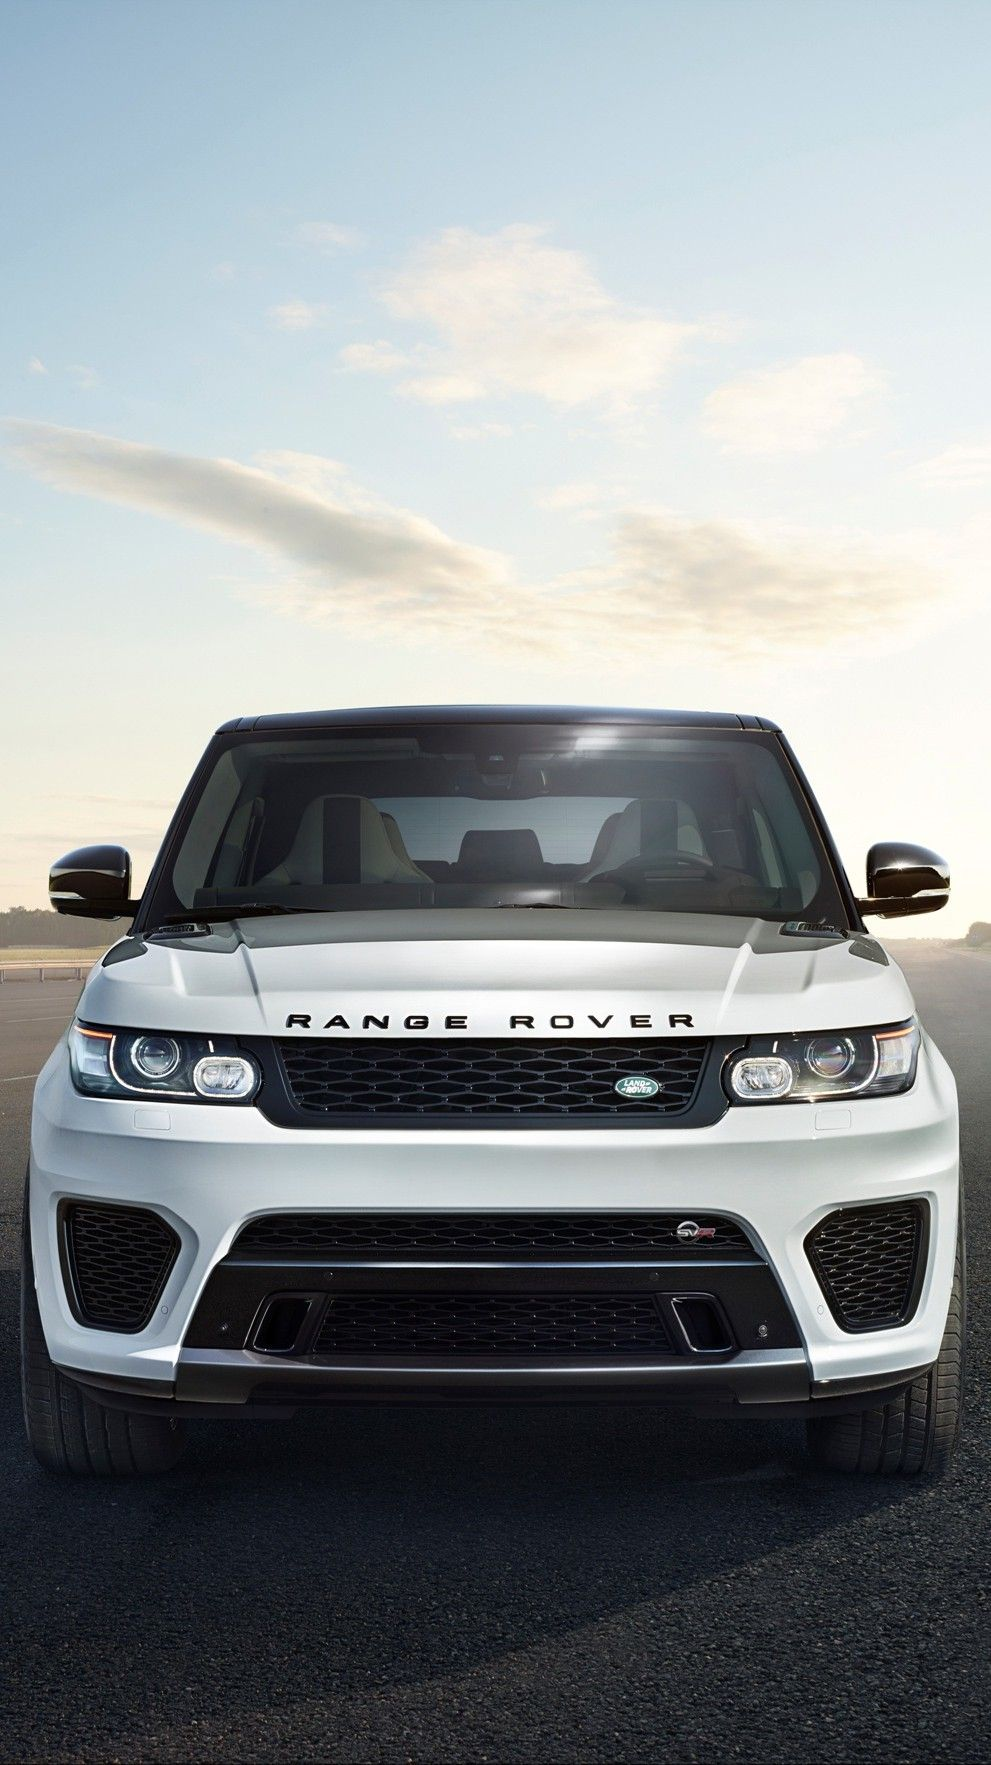 991x1765 - Range Rover Wallpapers 11